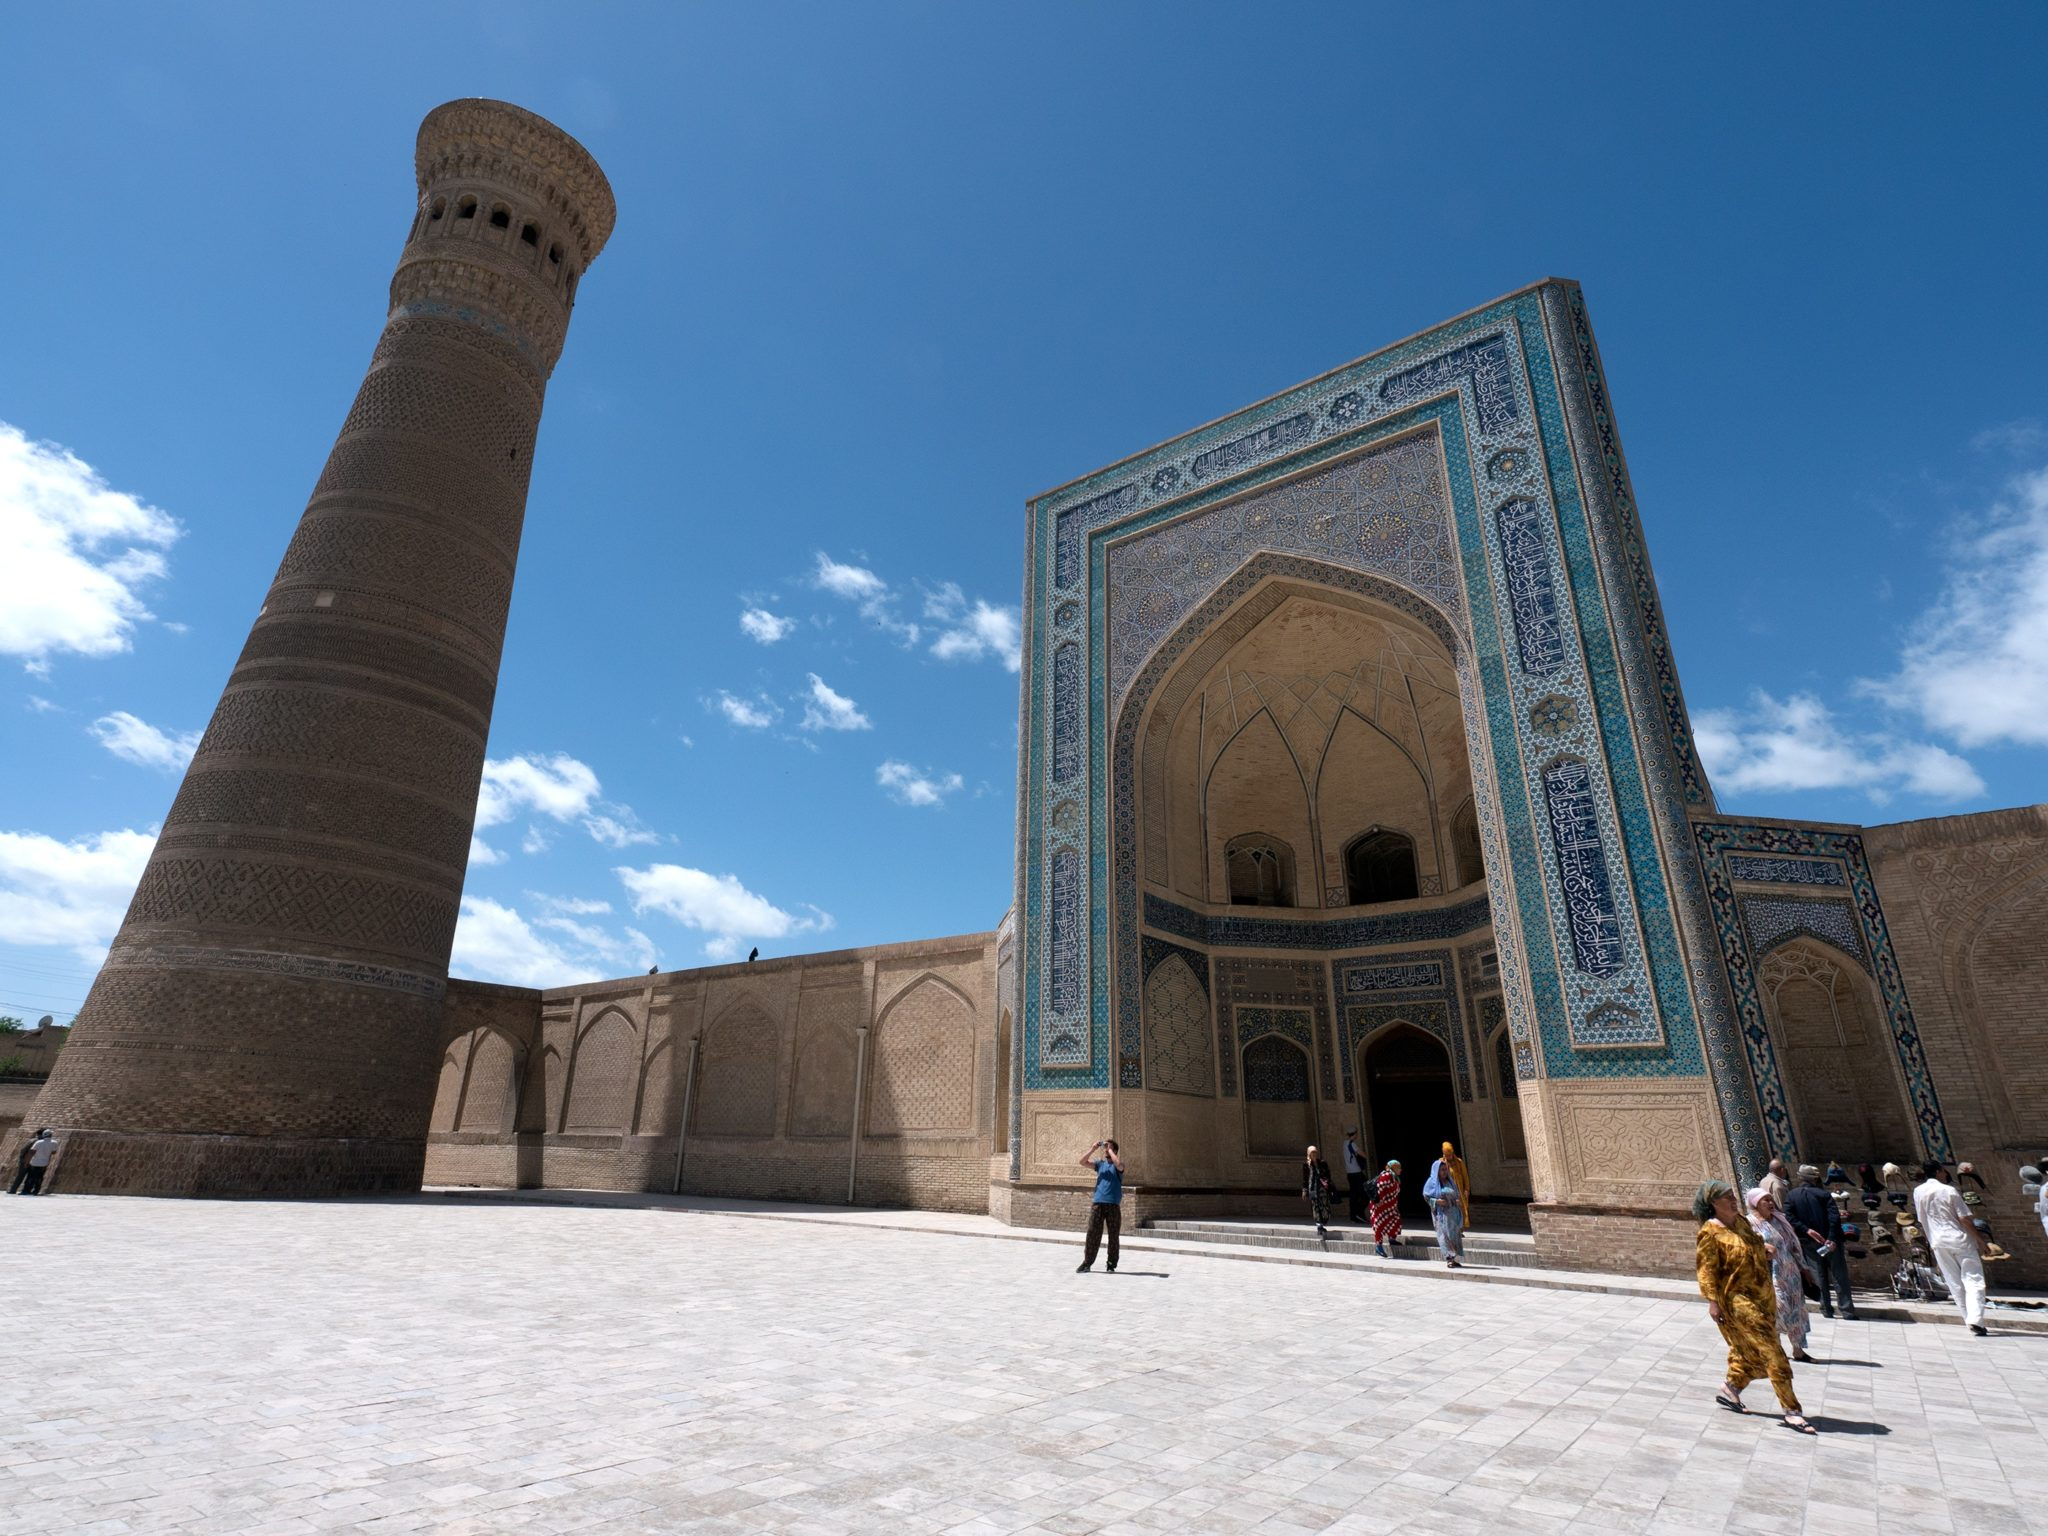 Uzbekistan introduces favorable cryptocurrency legislation.